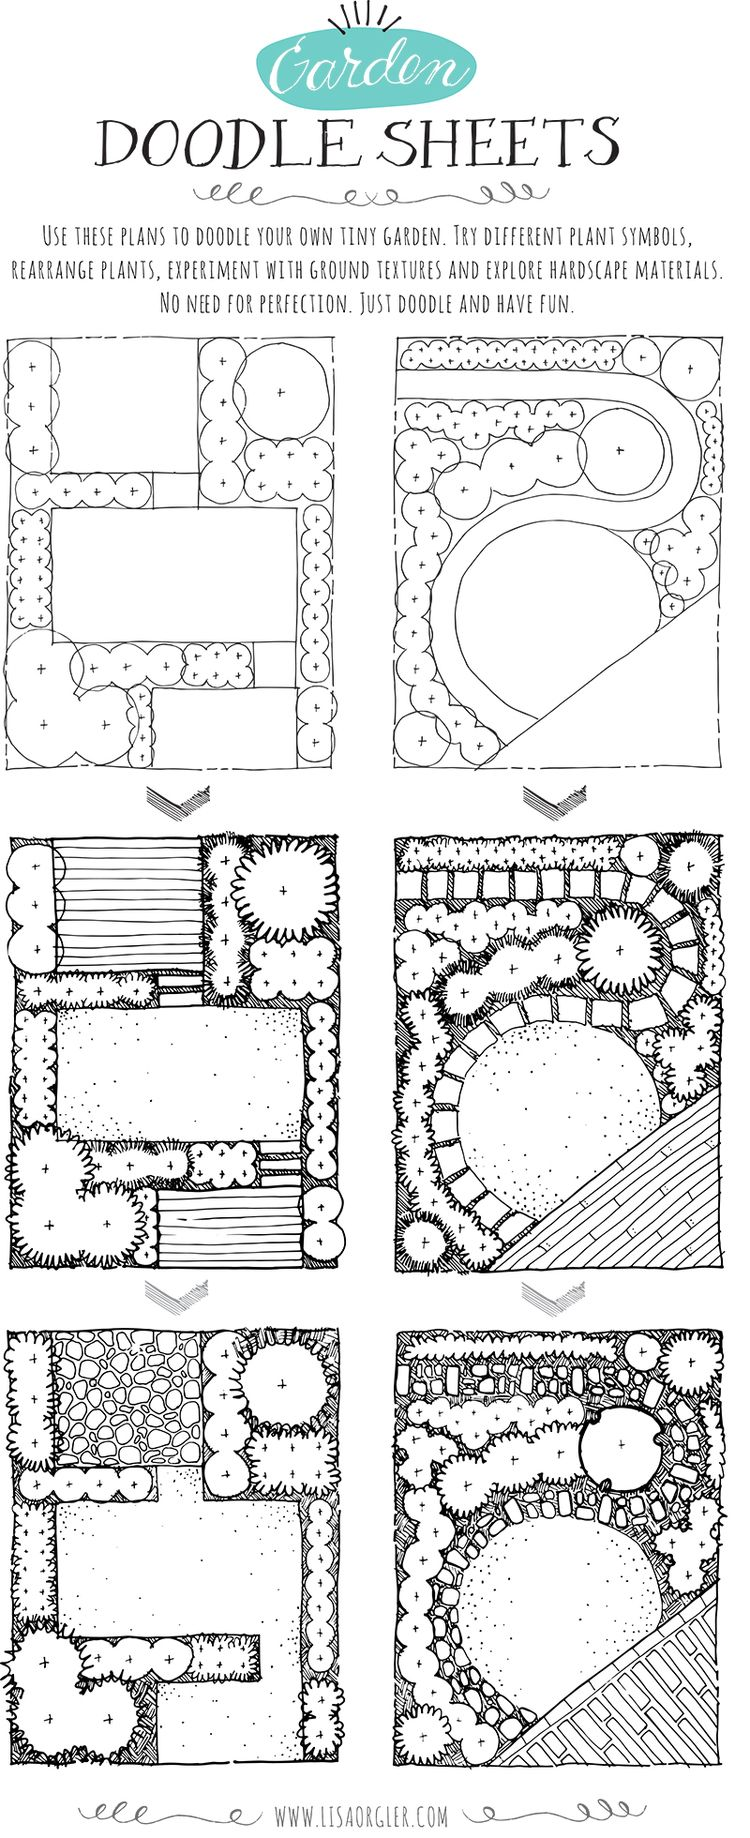 Garden Design Your Own free garden doodle sheets. click on image in post to download a